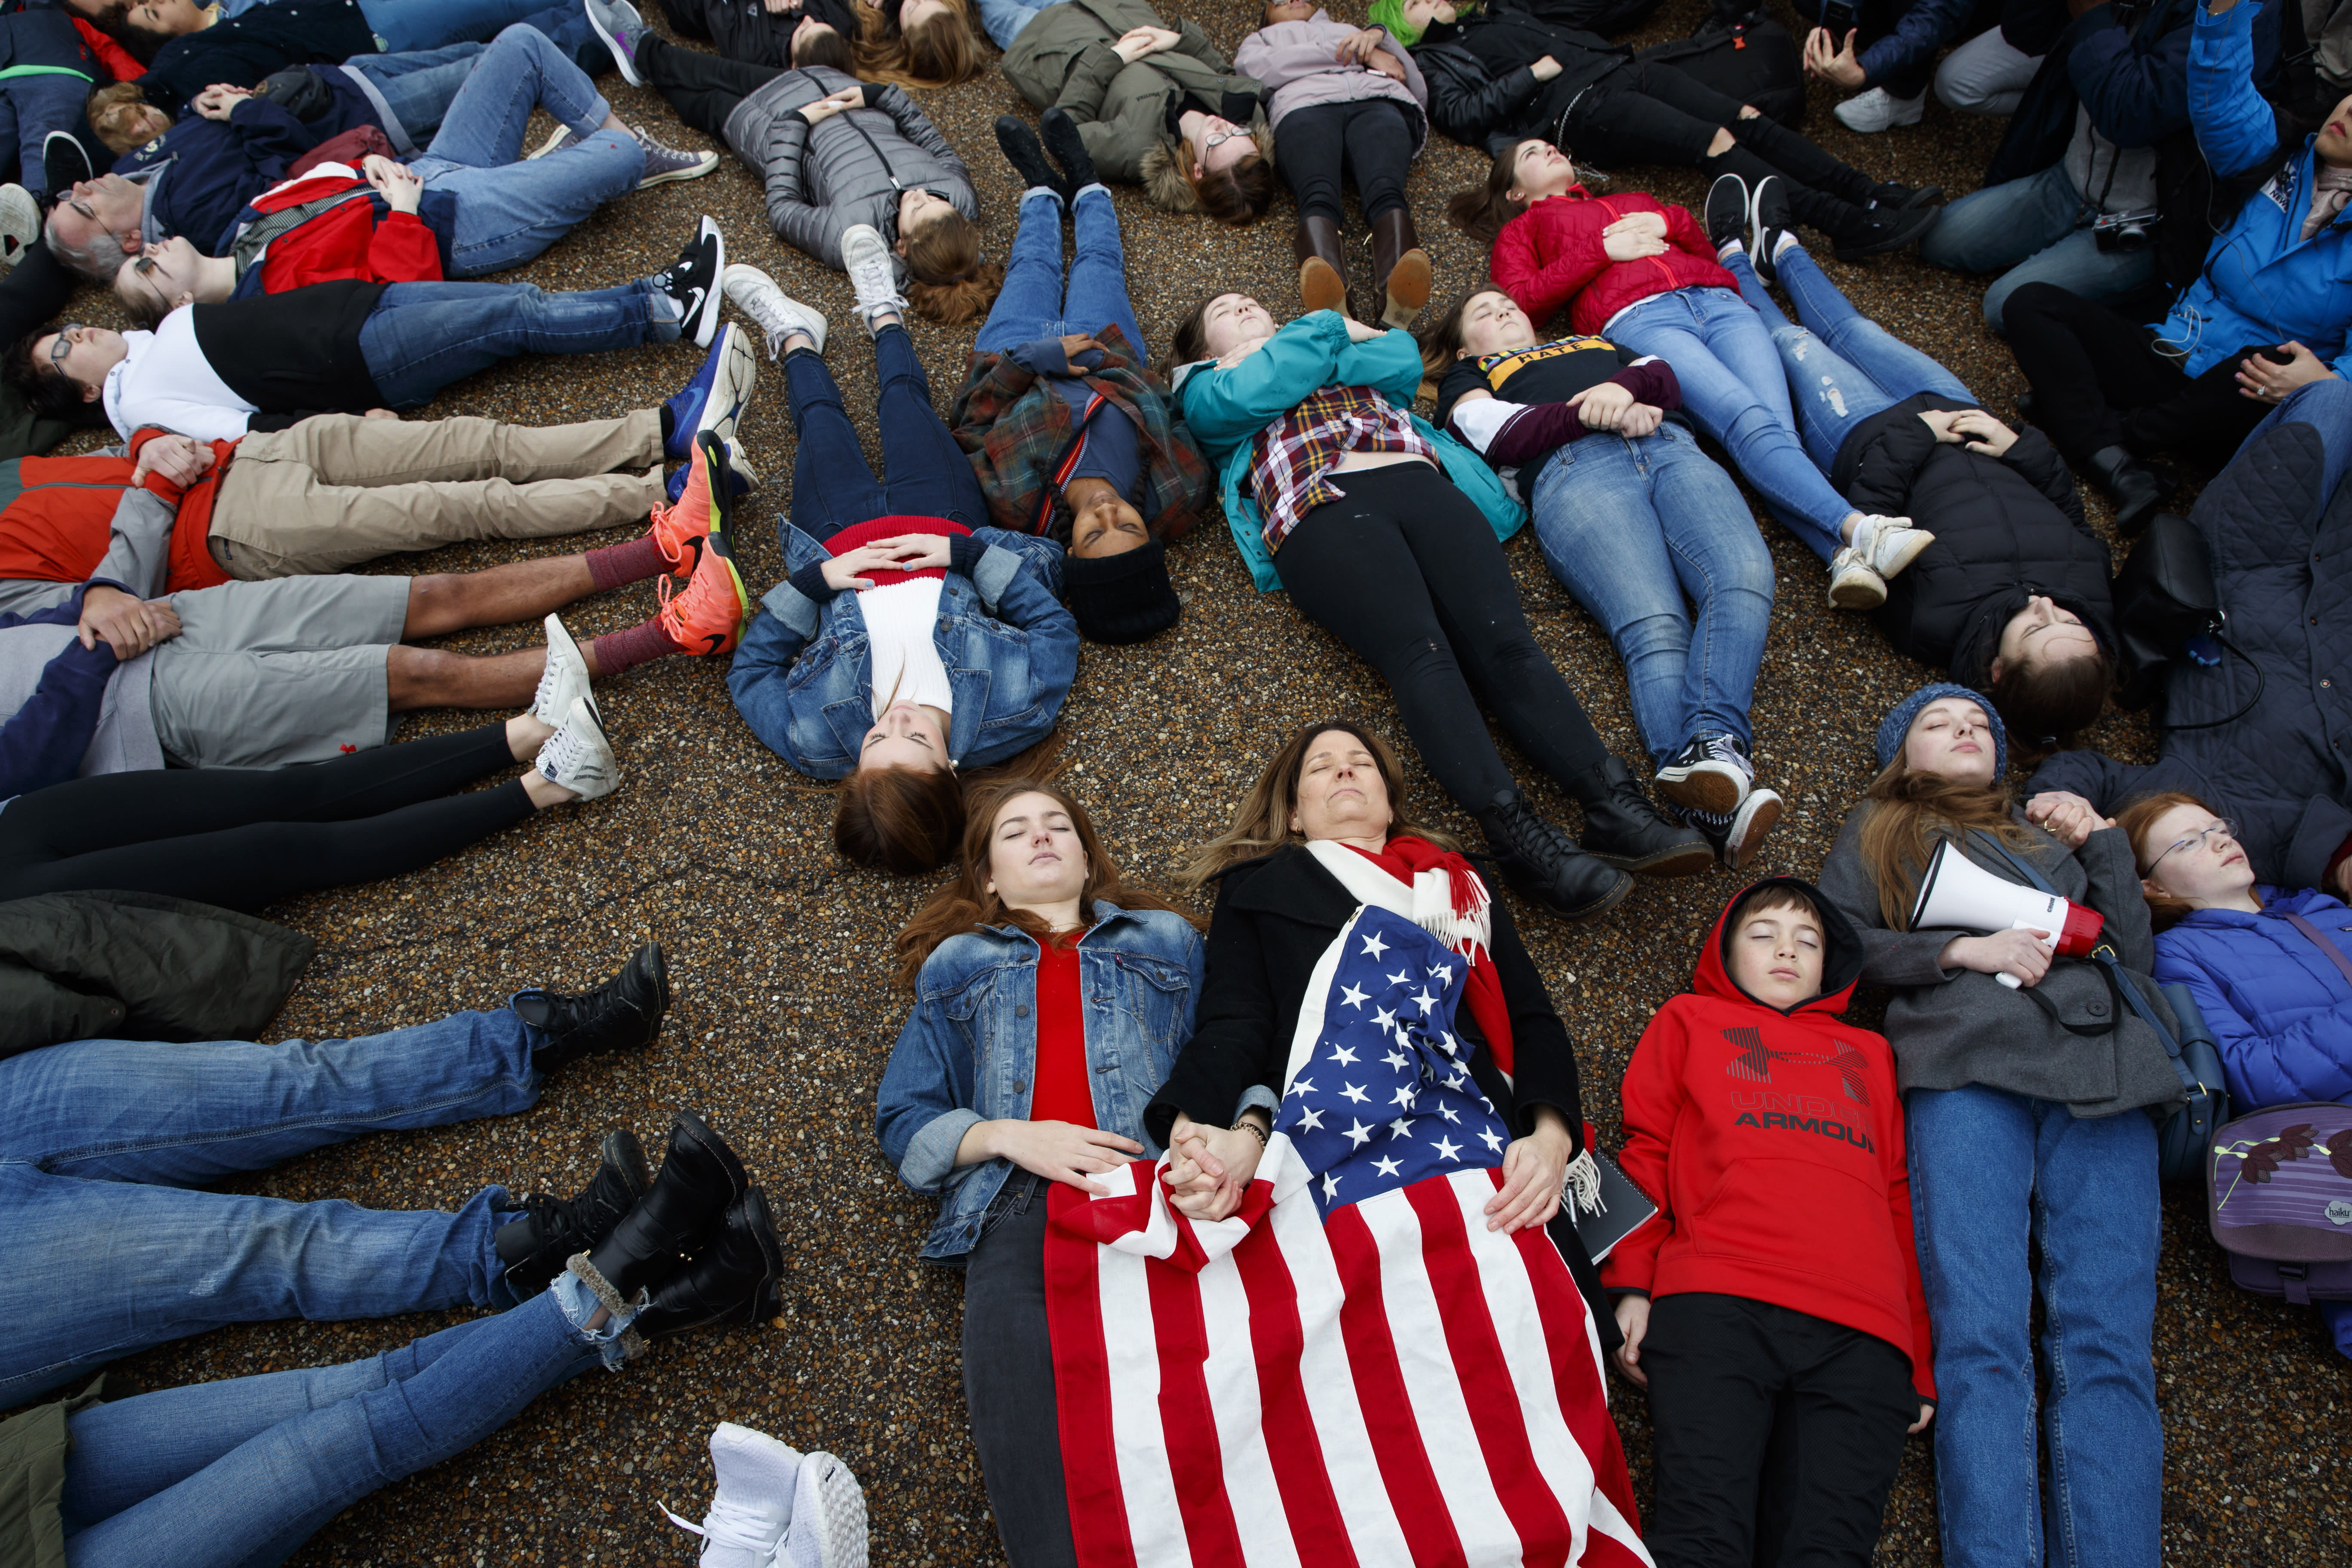 """<p>Abby Spangler and her daughter Eleanor Spangler Neuchterlein, 16, hold hands as they participate in a """"lie-in"""" during a protest in favor of gun control reform in front of the White House, Monday, Feb. 19, 2018, in Washington. (Photo: Evan Vucci/AP) </p>"""